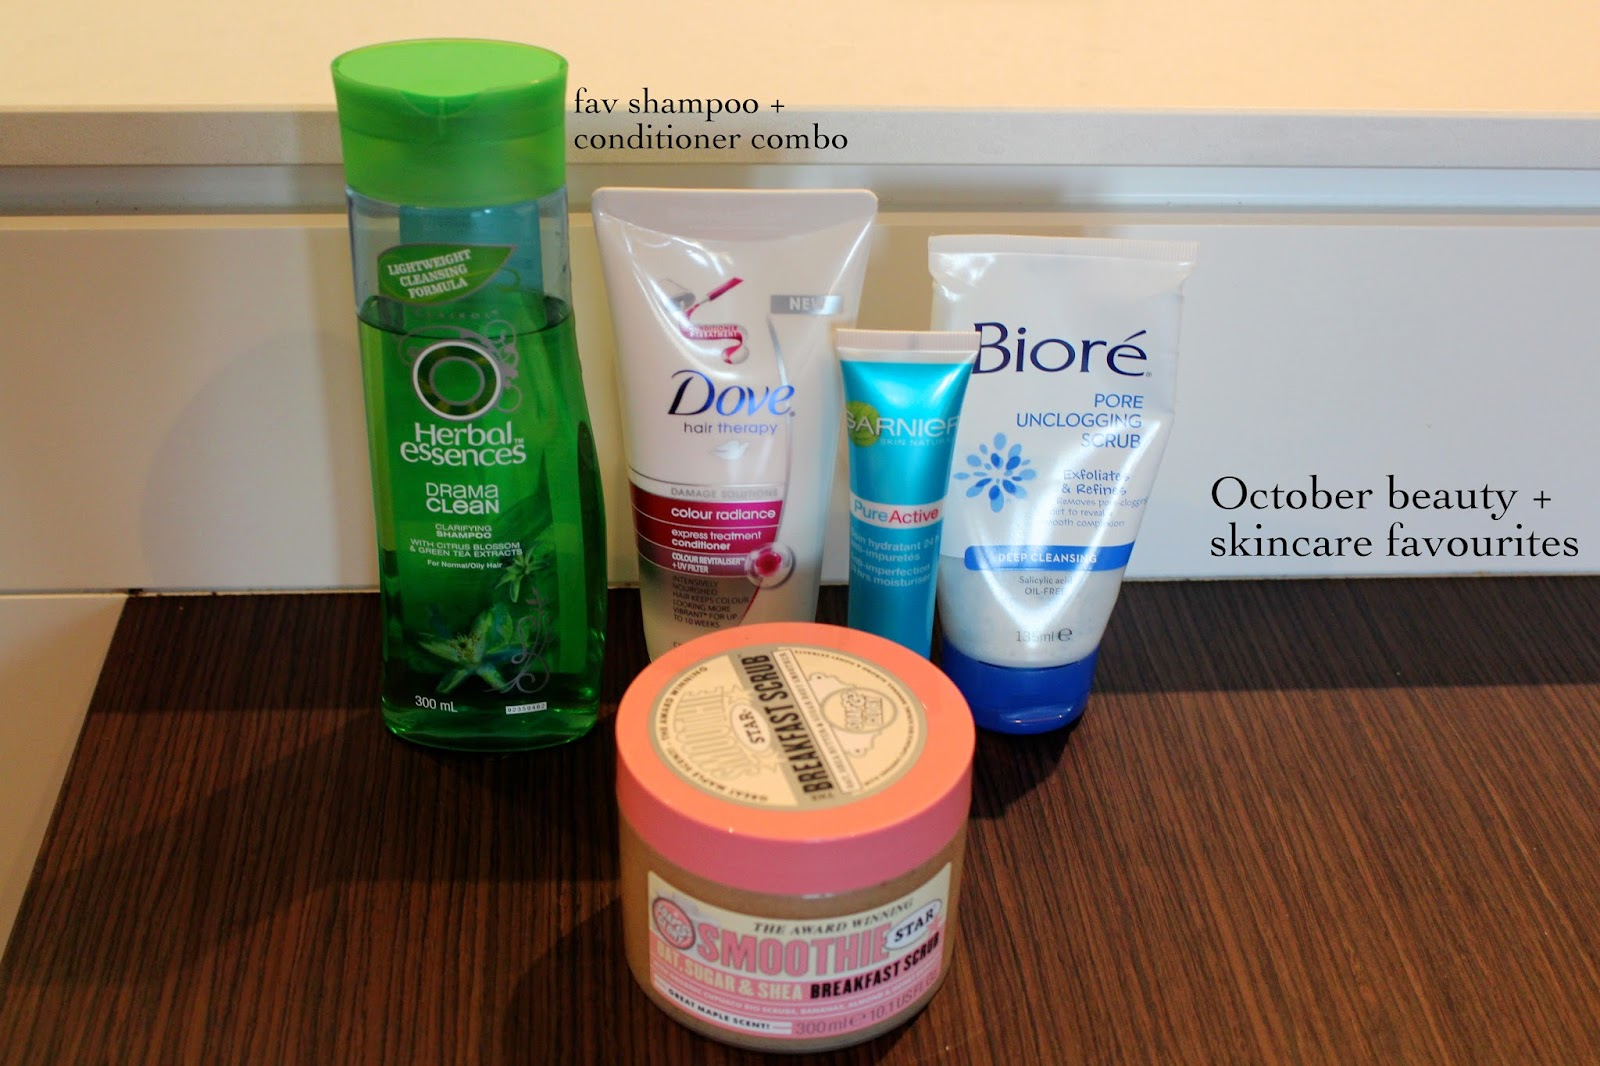 october beauty and skincare favourites, herbal essences drama clean shampoo, dover colour radiance express treatment conditioner, garnier pure active anti-imperfections moisturiser, biore pore unclogging scrub, soap and glory breakfast scrub, reviews, beauty review, skincare reviews